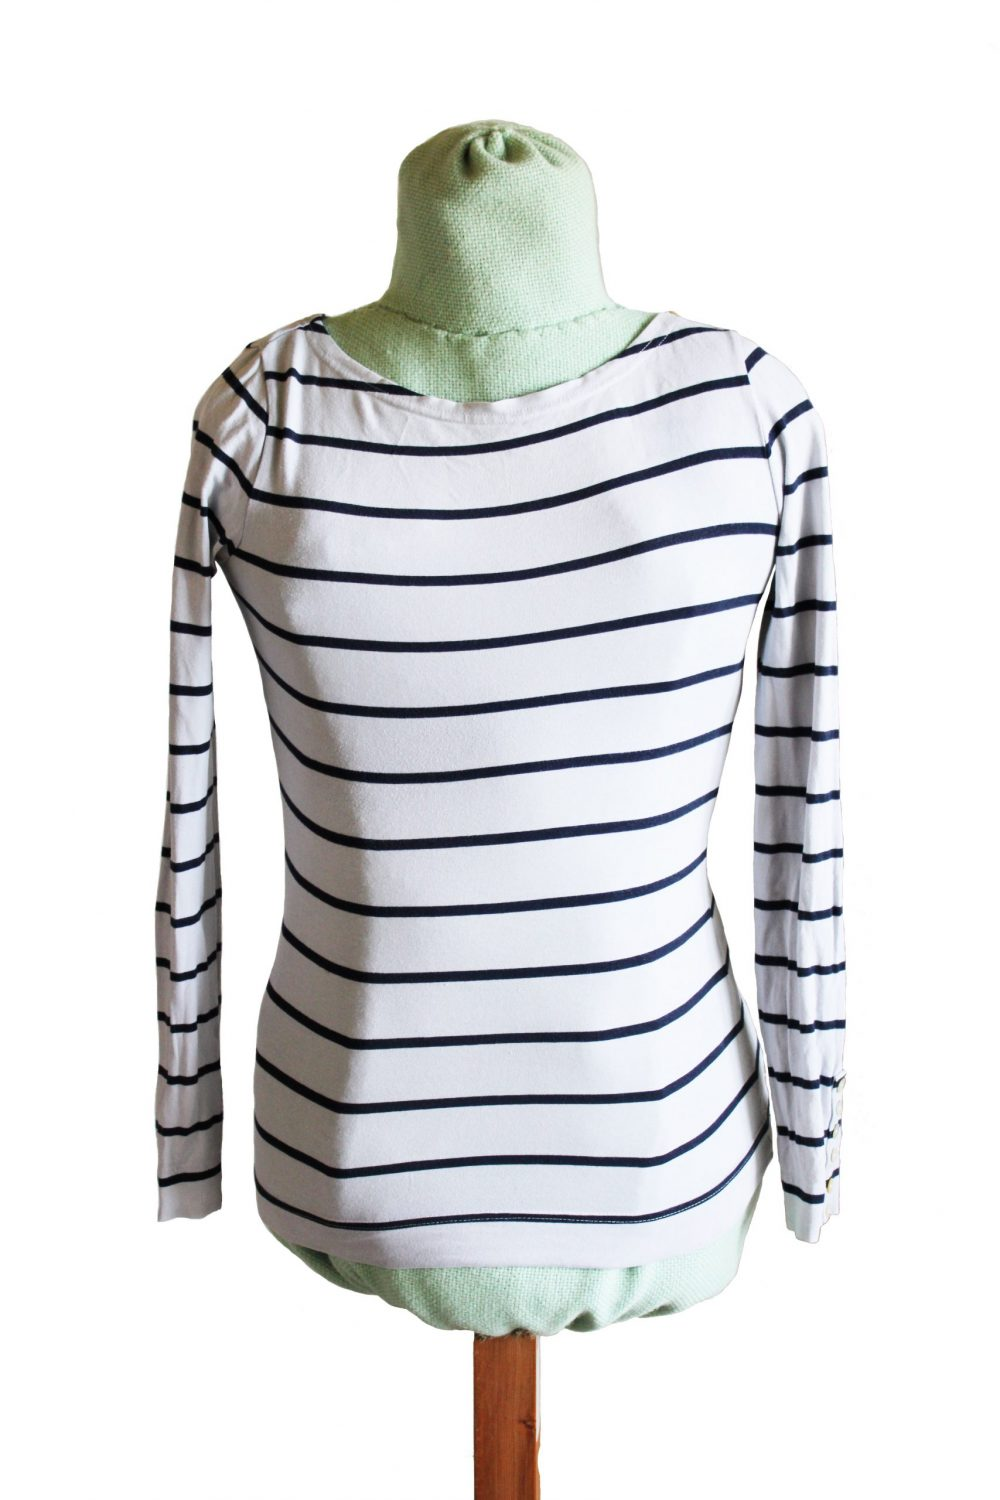 White long sleeved top with dark blue horizontal stripes